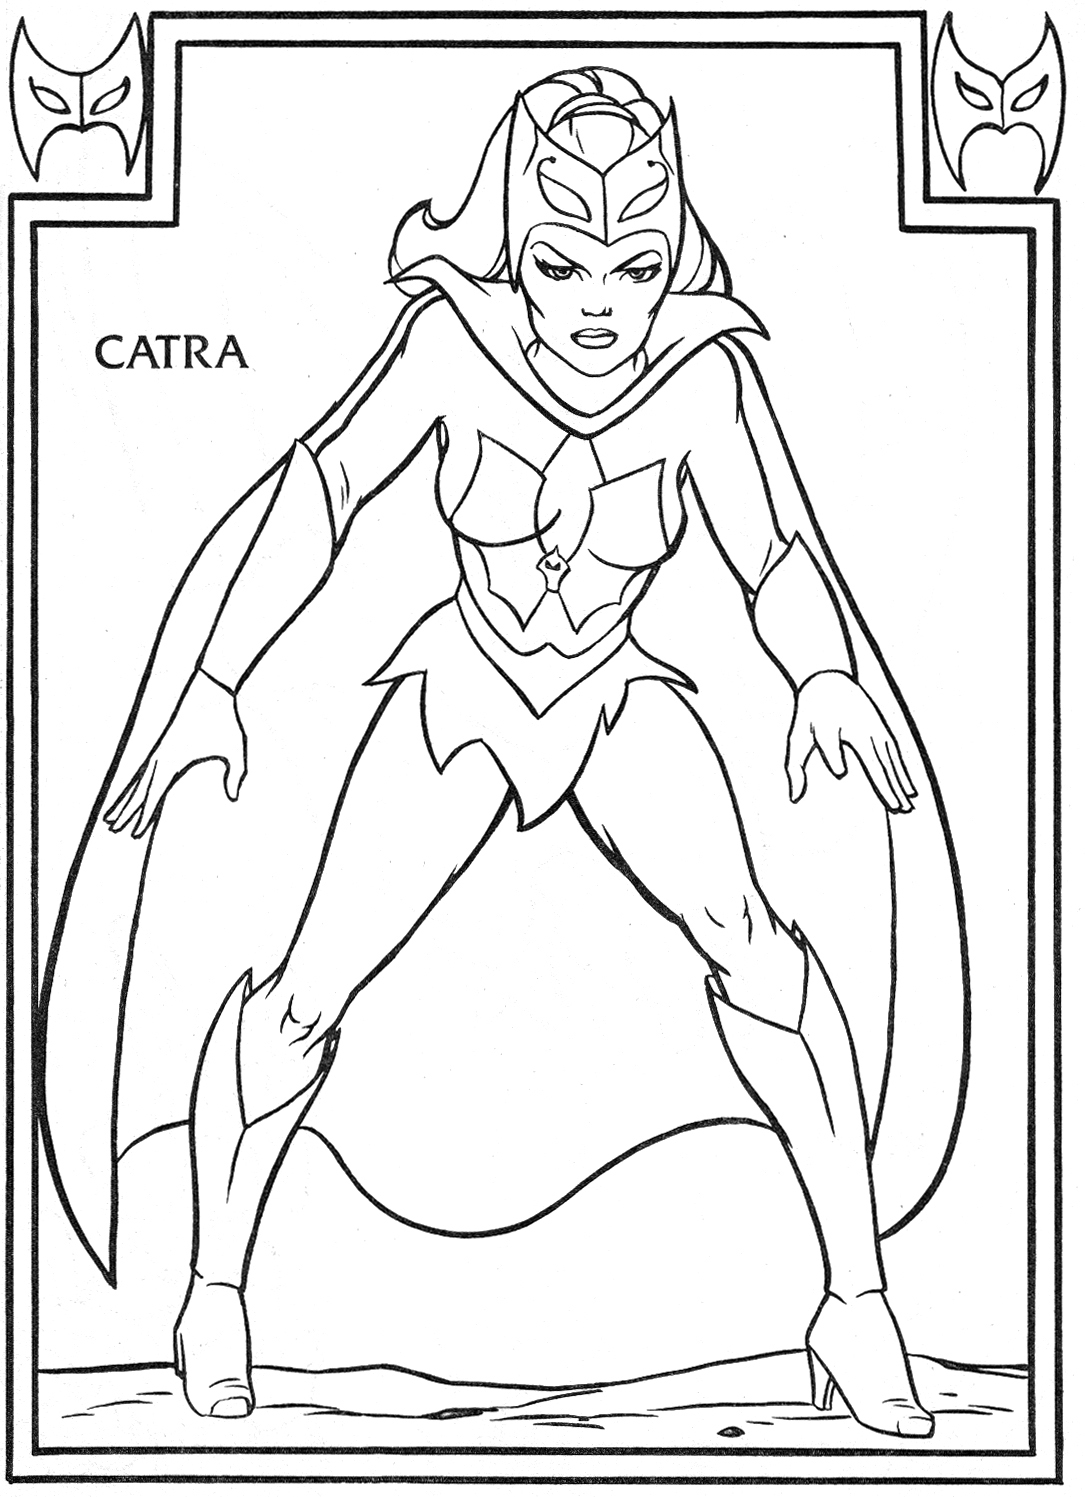 ra coloring book pages - photo #38